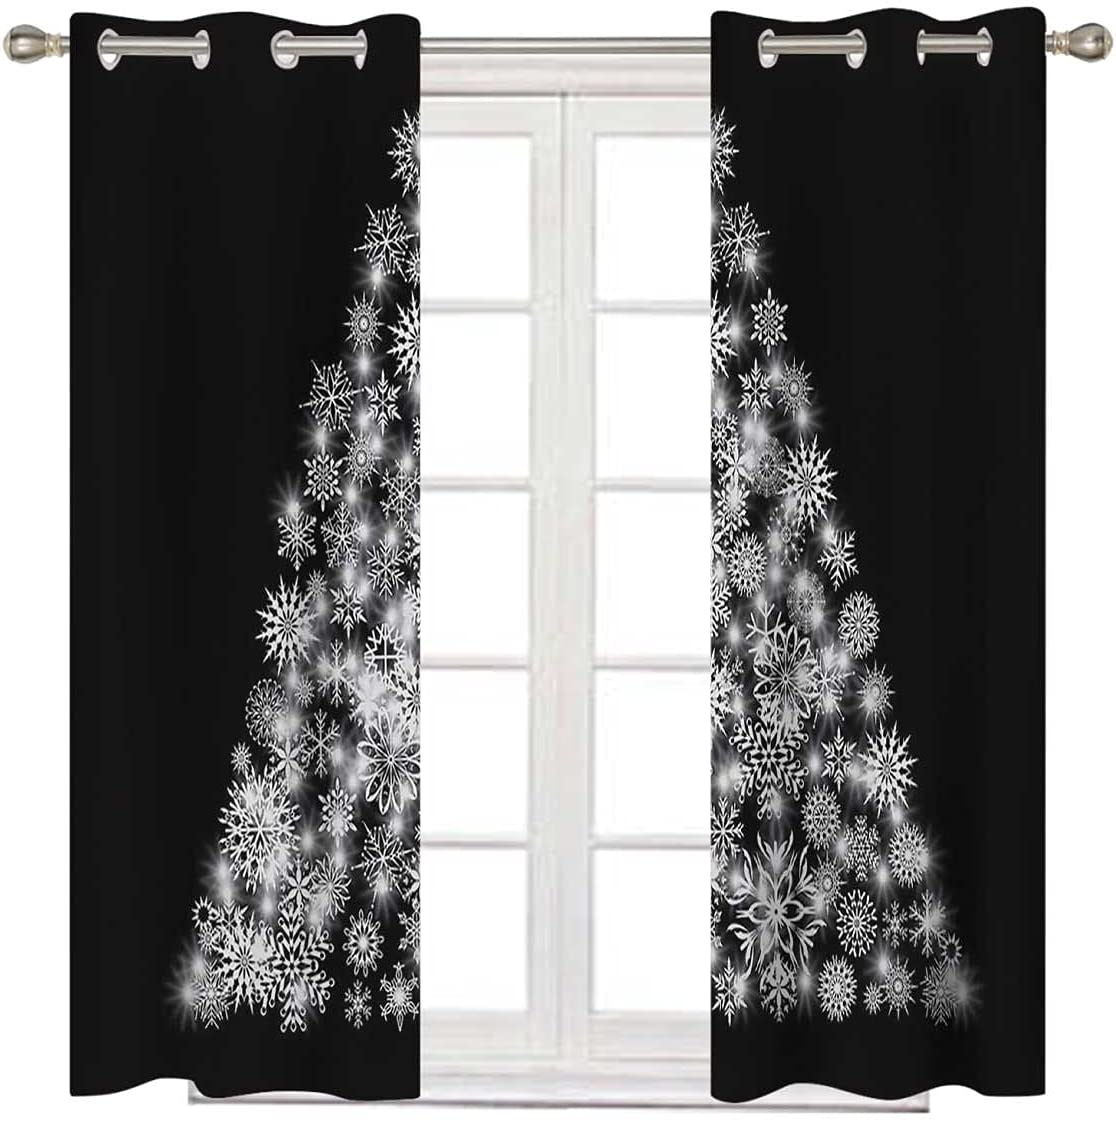 Farmhouse Curtains 108 Inch Long Snowflake Decor Glow Christm Limited Cheap mail order shopping time sale g